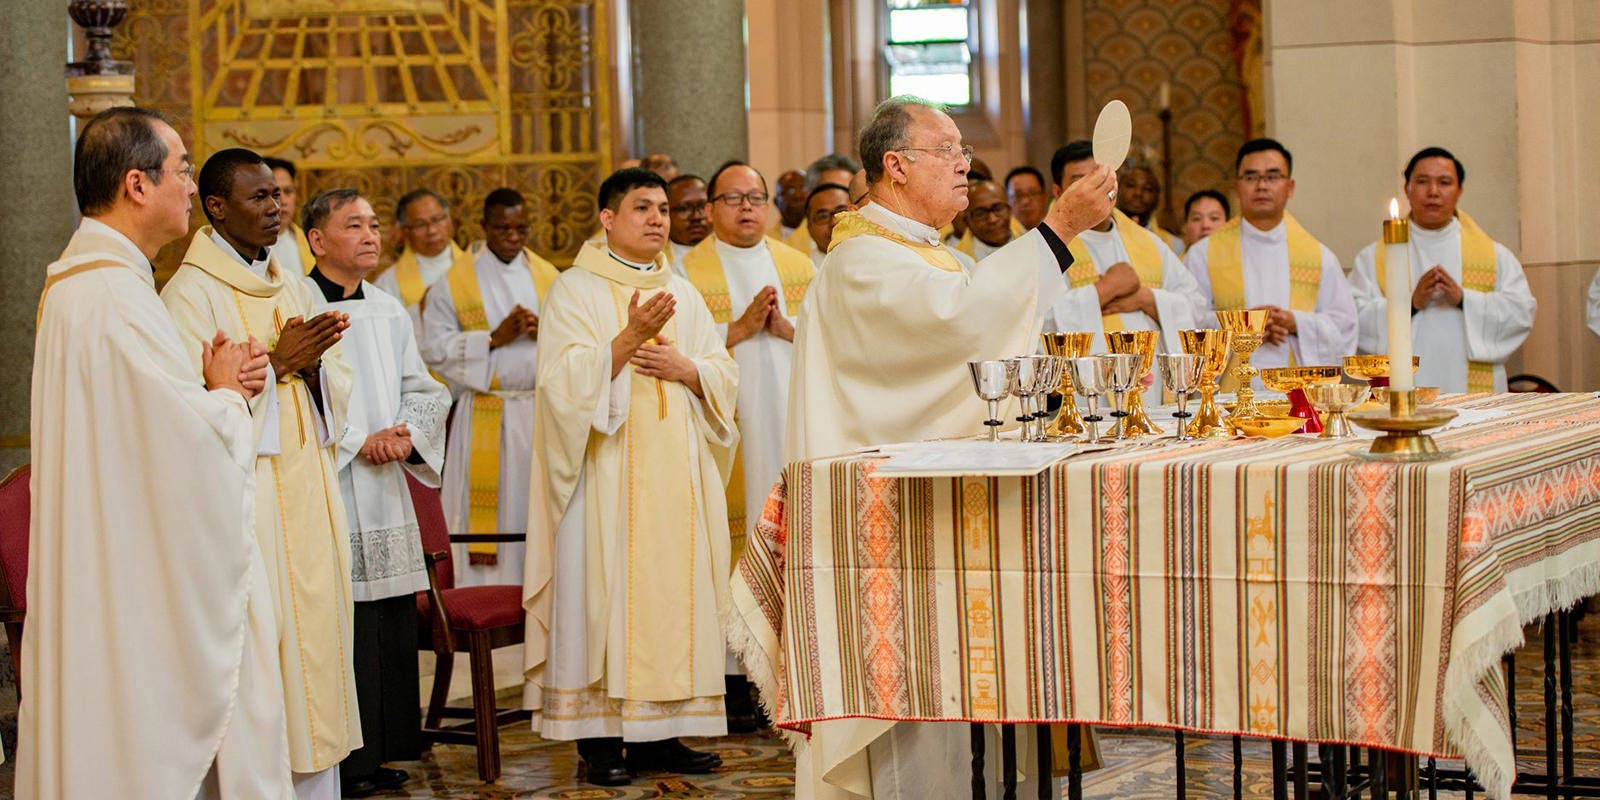 Priests of the Society of the Divine Word celebrate mass in Techny, Illinois